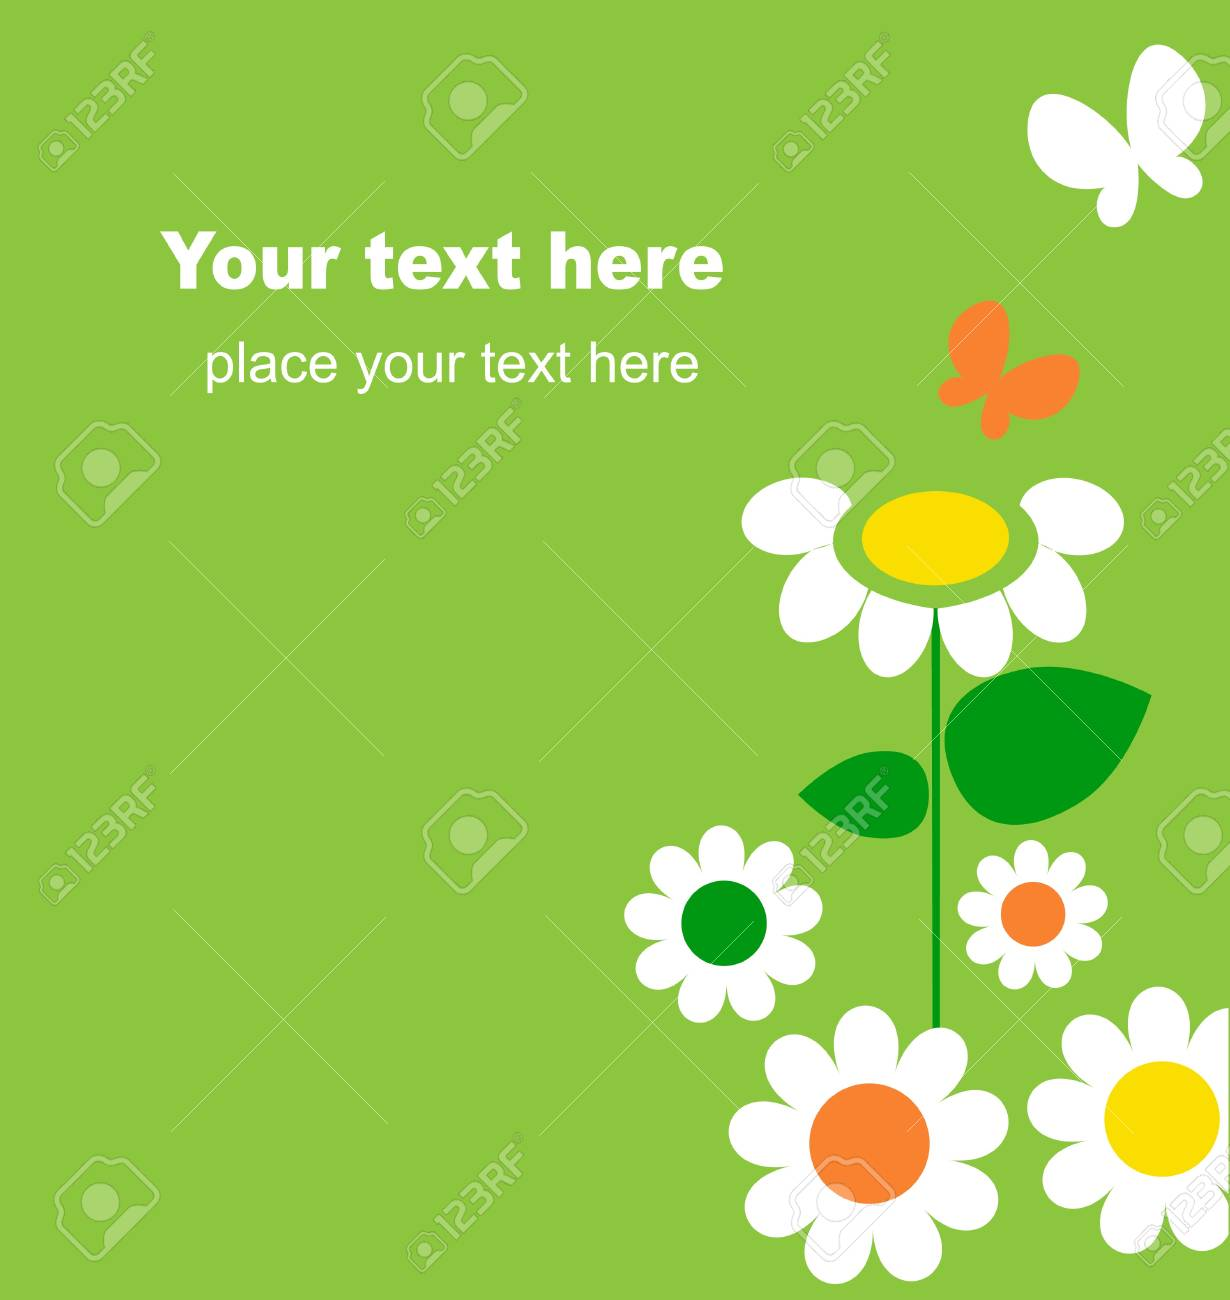 Springtime flowers and butterflies, vector illustration 1 Stock Vector - 9861797